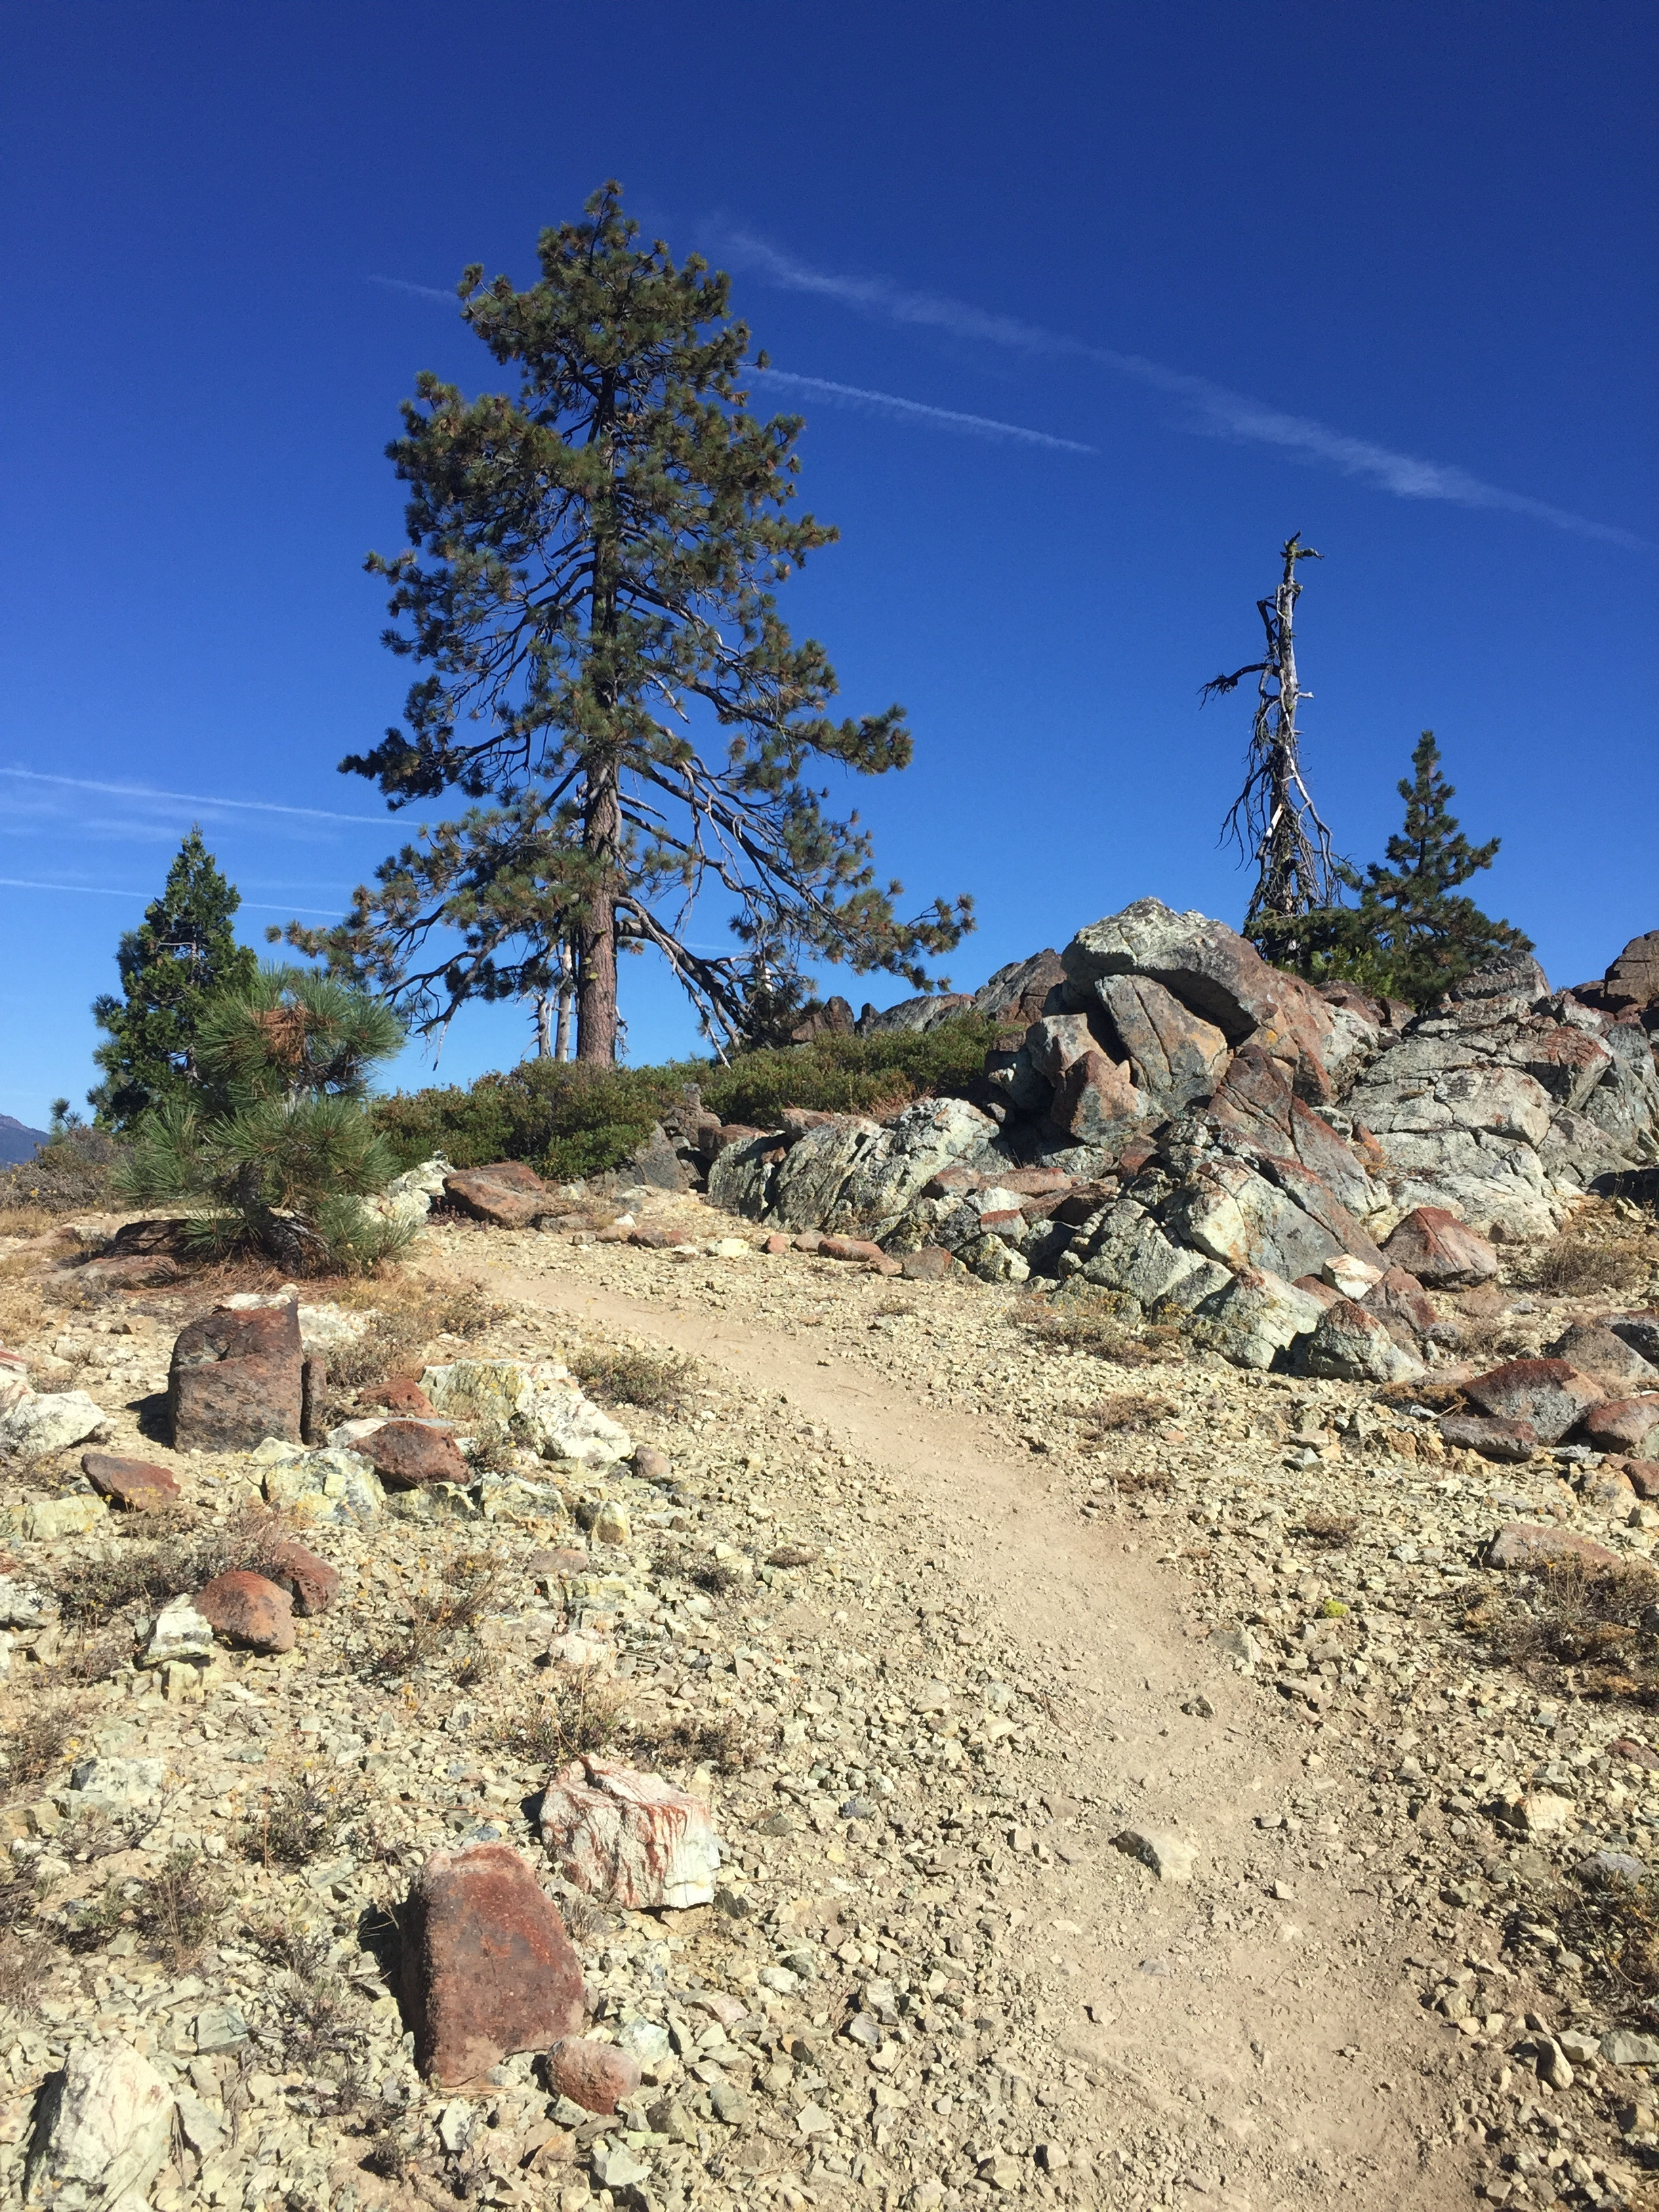 Dry, sure, but dramatic too. The trail climbs after leaving Hwy 3 at Scott Mountain Summit. Tall Jeffrey Pine ahead.